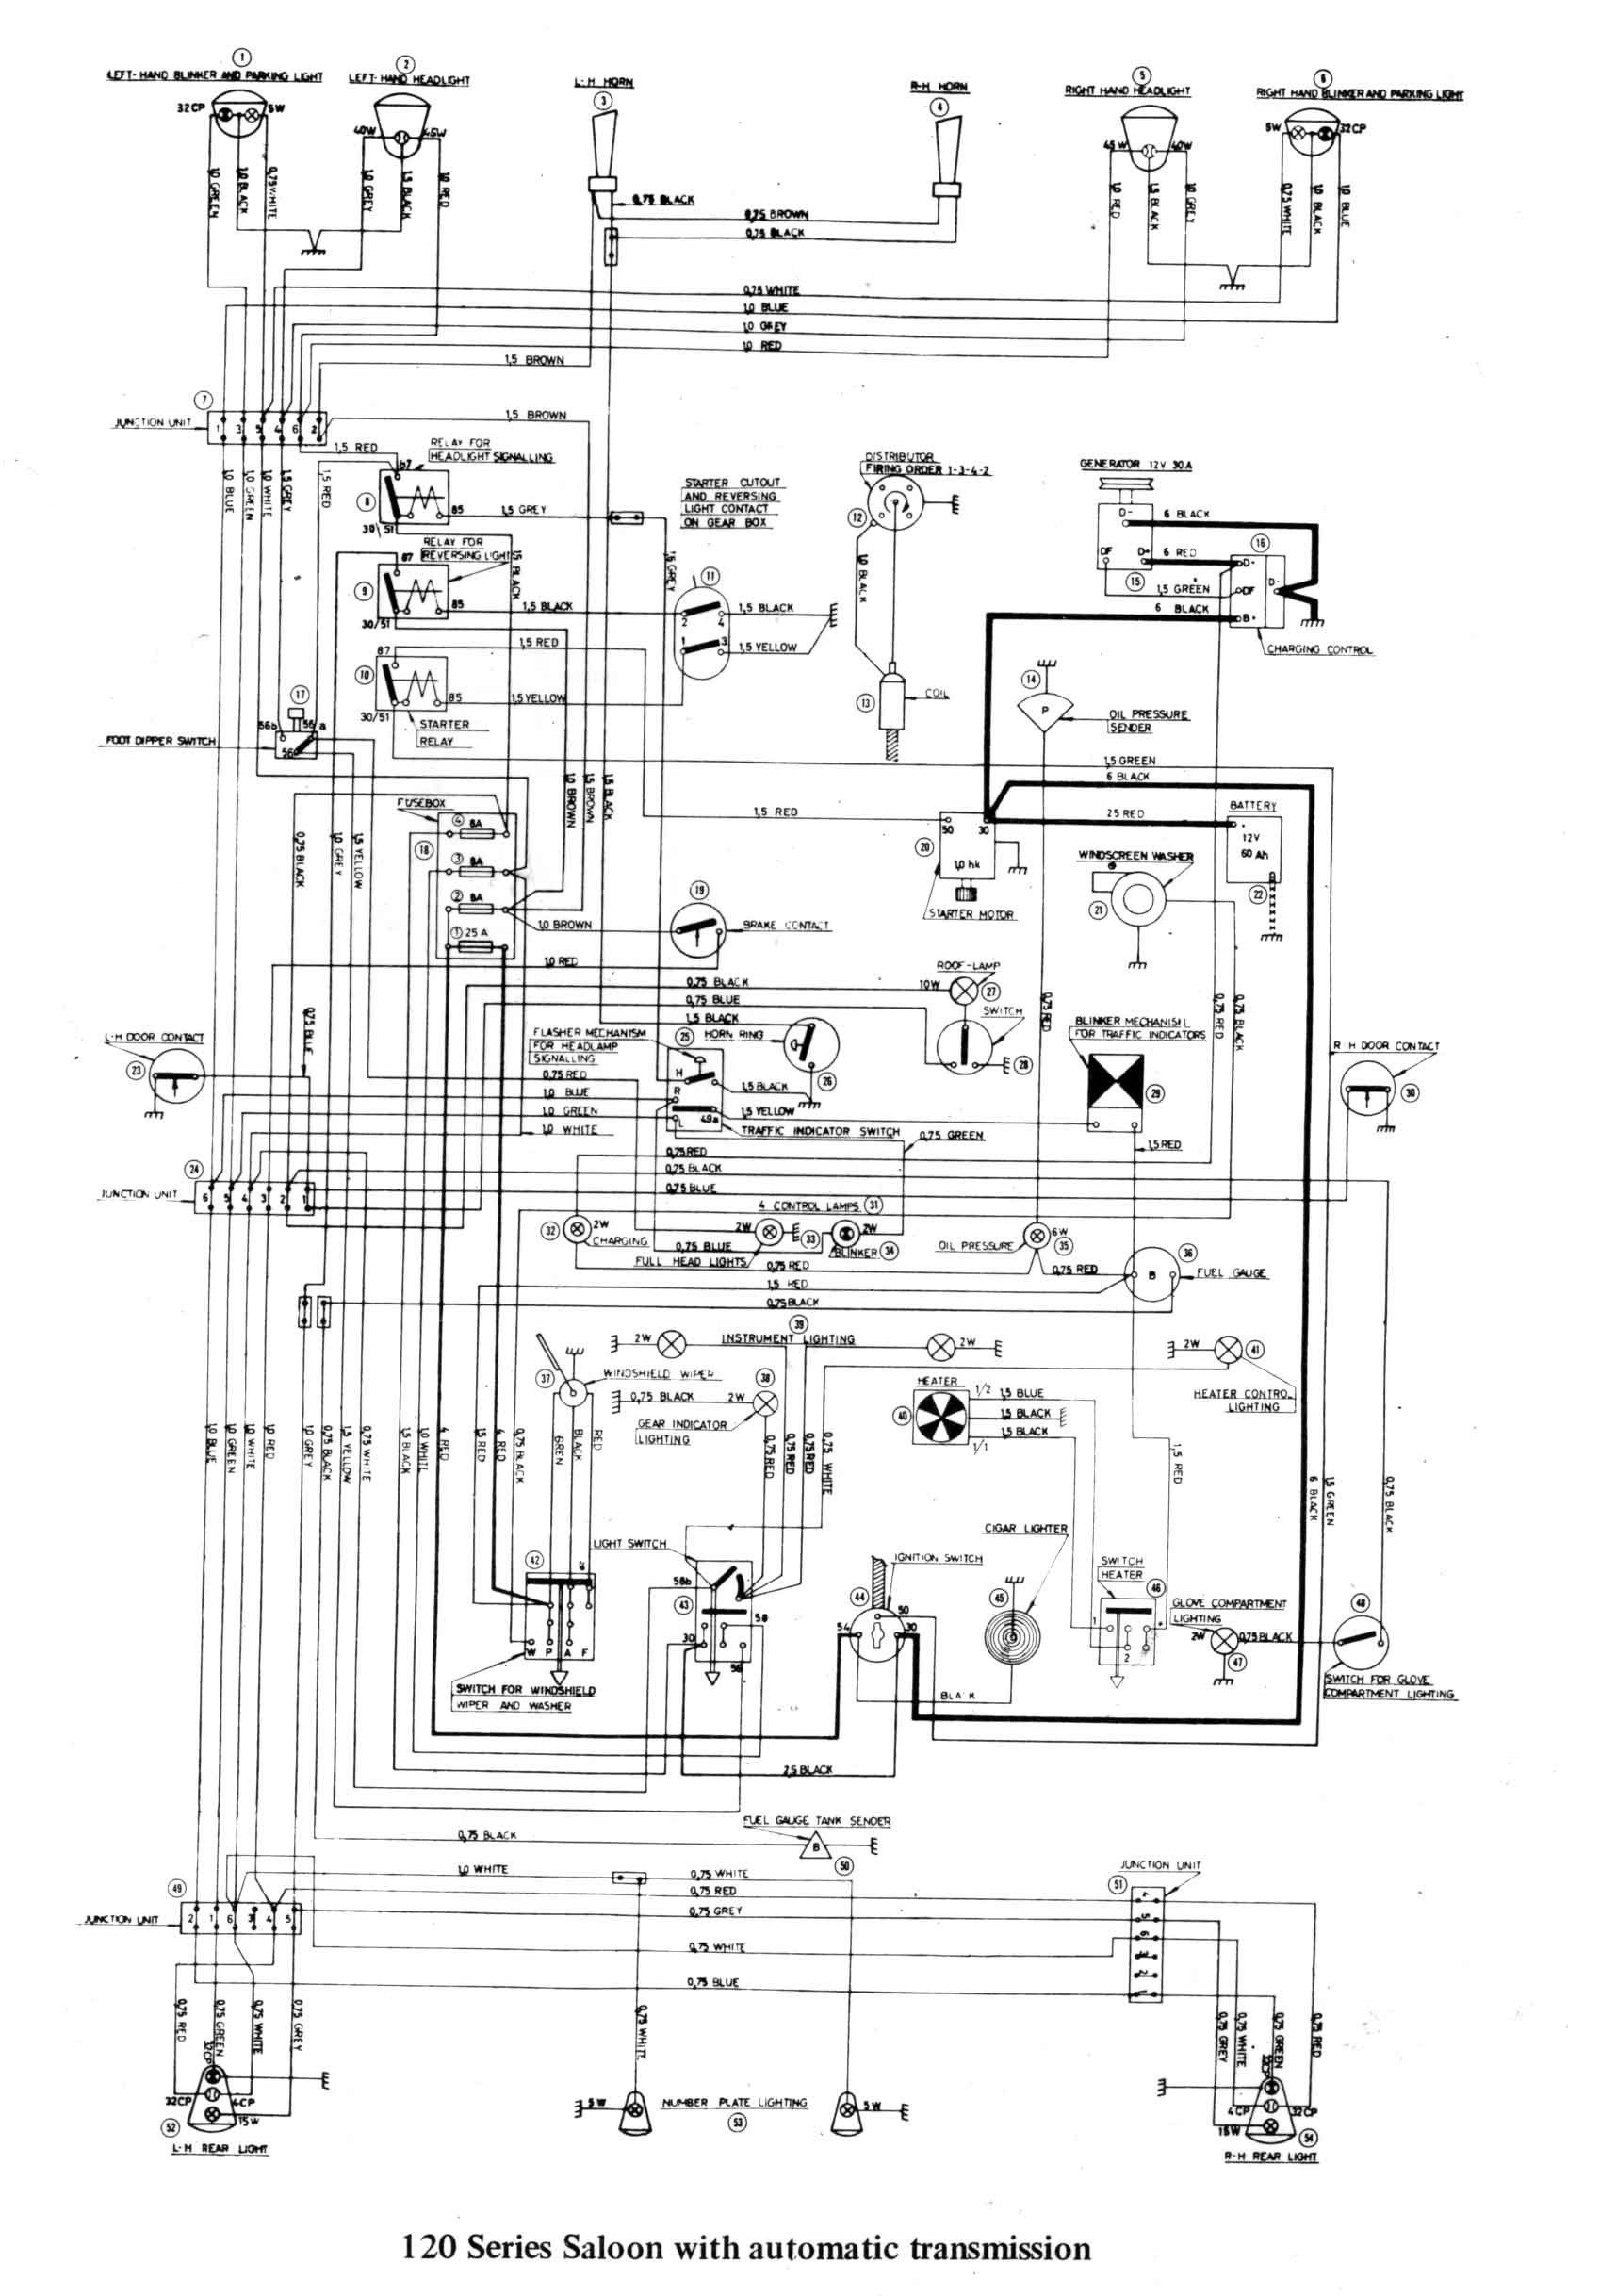 2001 Volvo S80 Engine Diagram Electrical Wiring Diagram Trailer Wiring Diagram Volvo